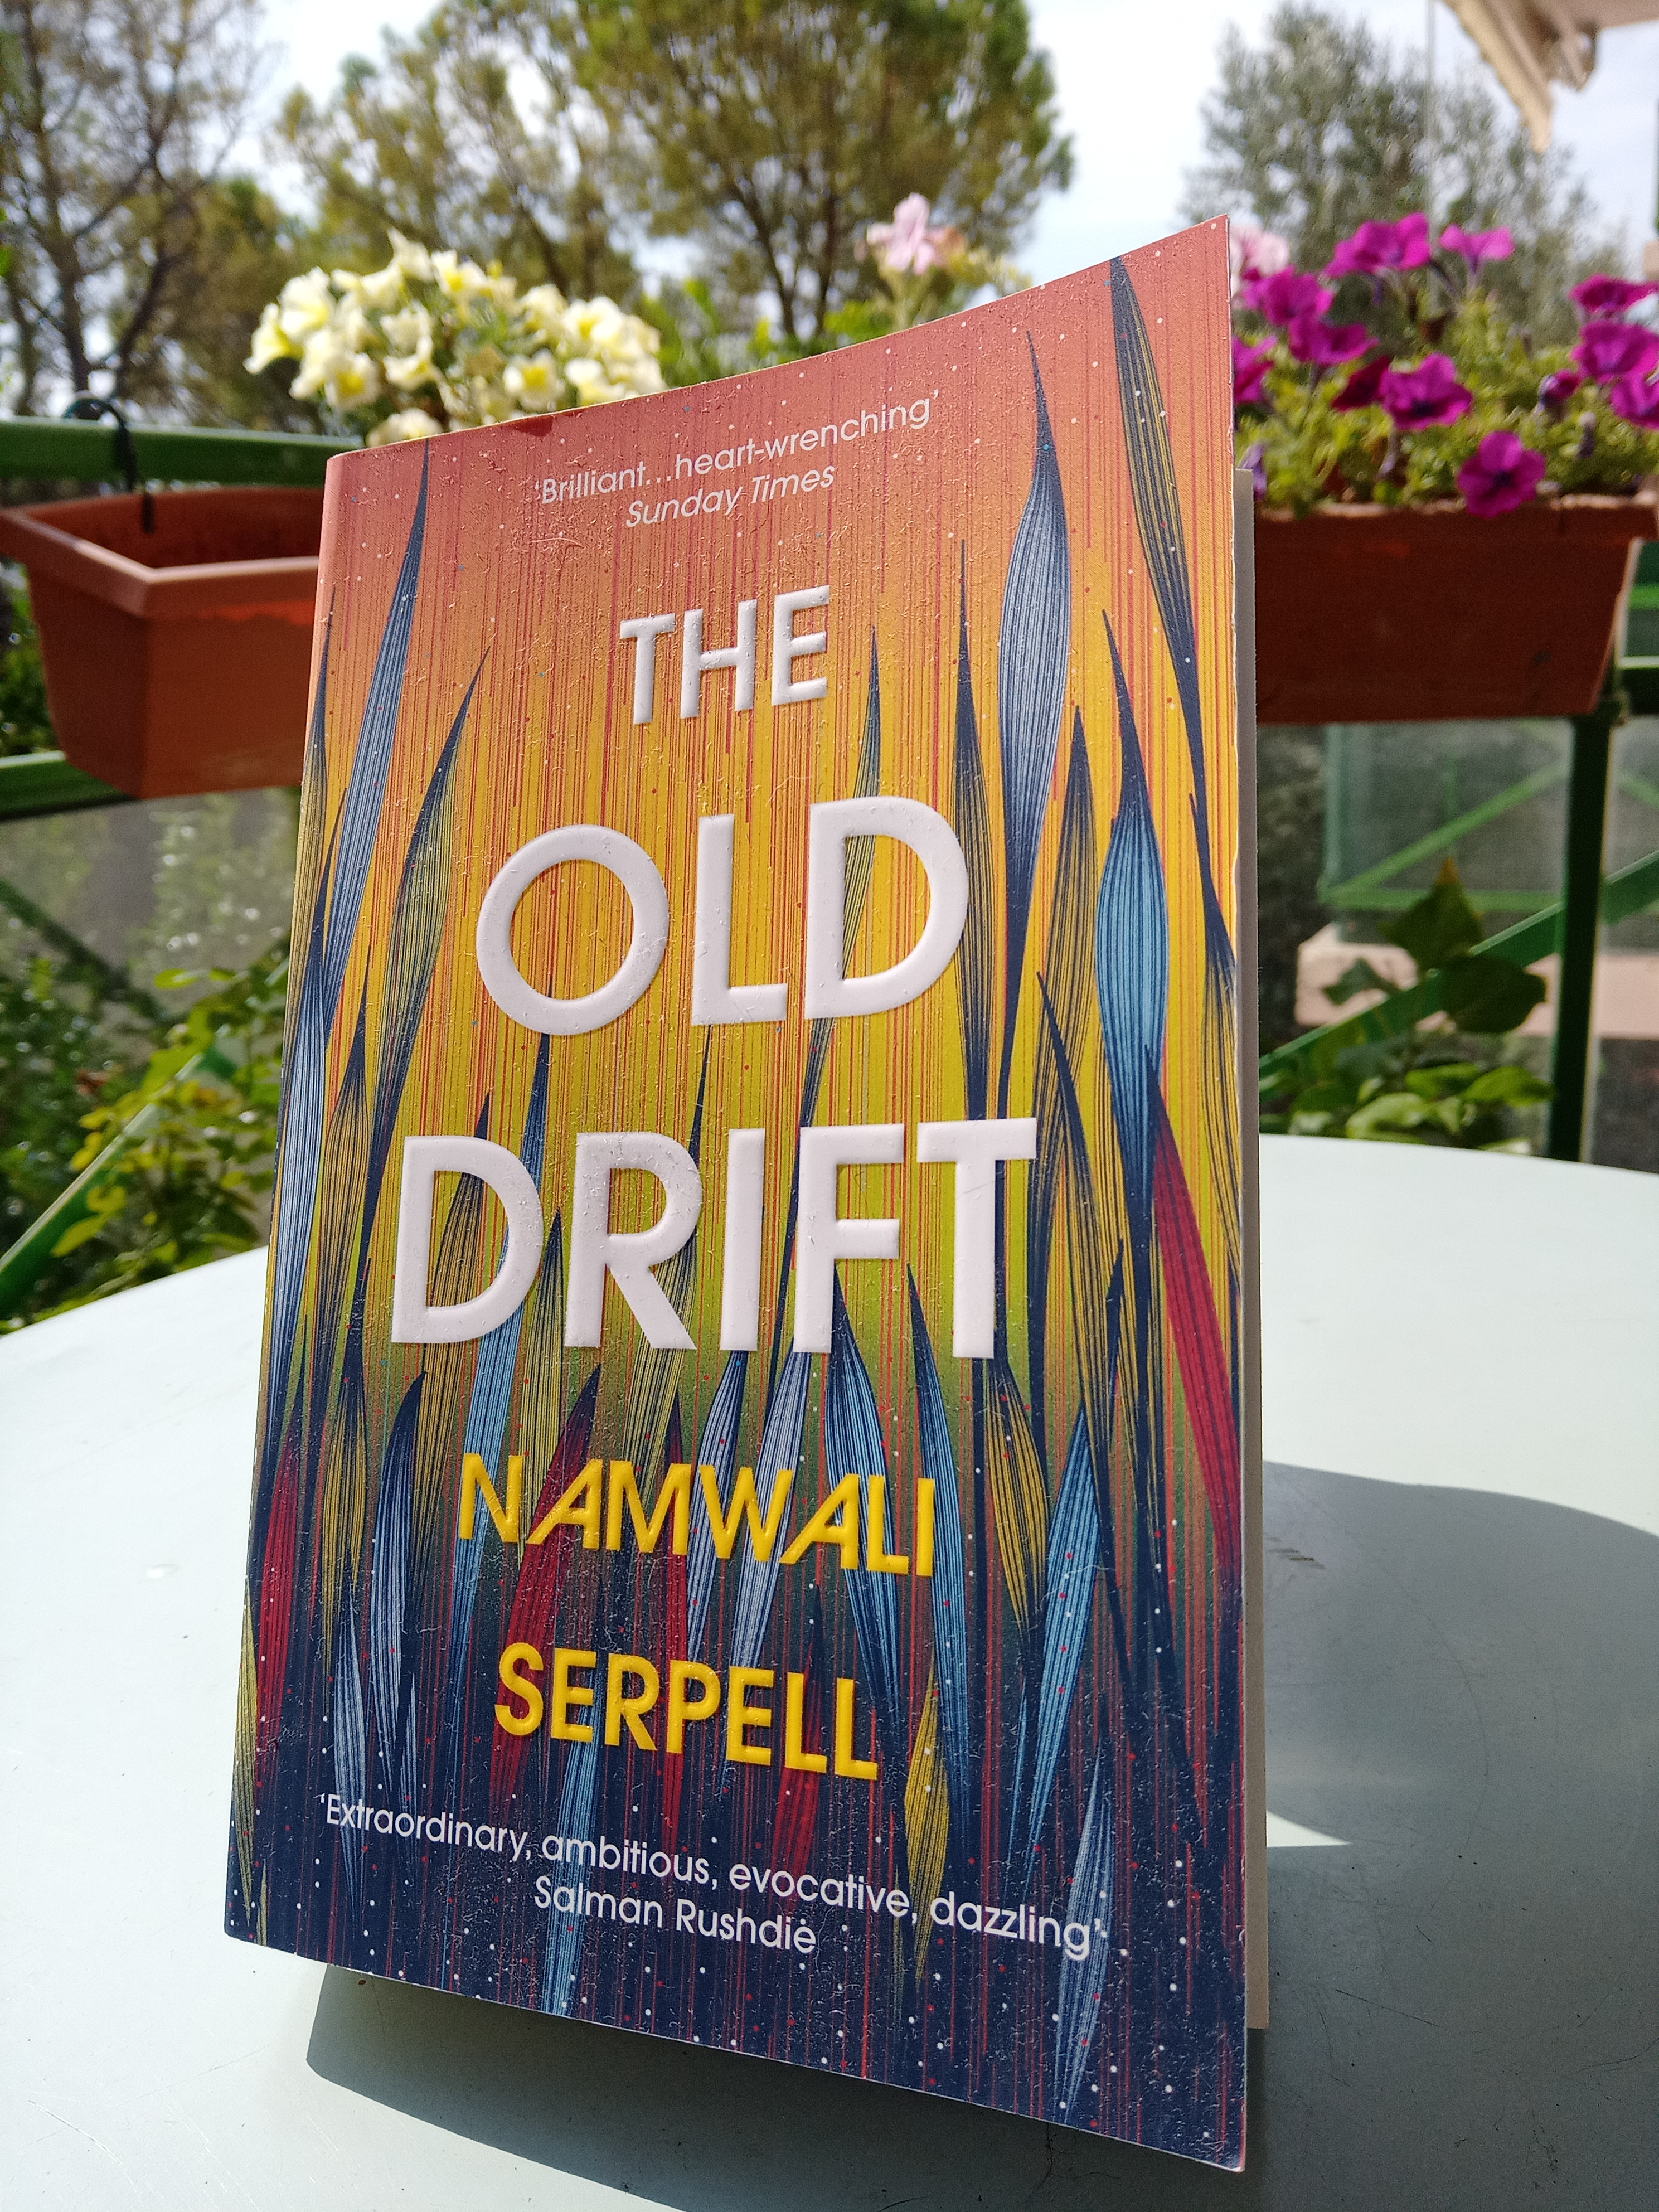 Arthur C. Clarke Award for science fiction literature 2020 Namwali Serpell